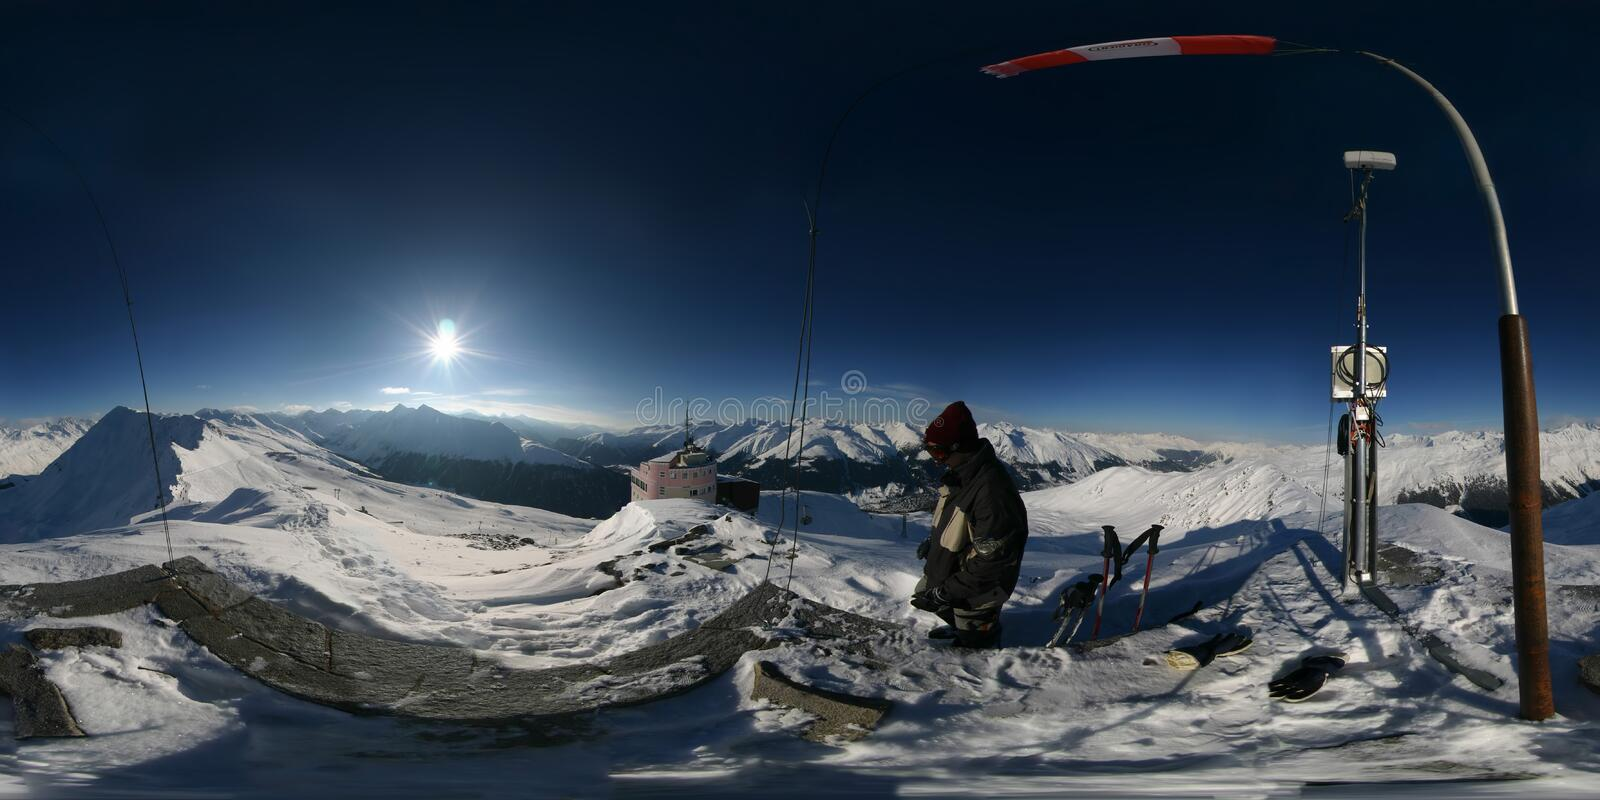 360 Degree Spherical Panorama From The Top Of Jakobshorn Mountain In Davos Switzerland Use Panocube Or Quicktime Vr To View As An Immersive Sphere